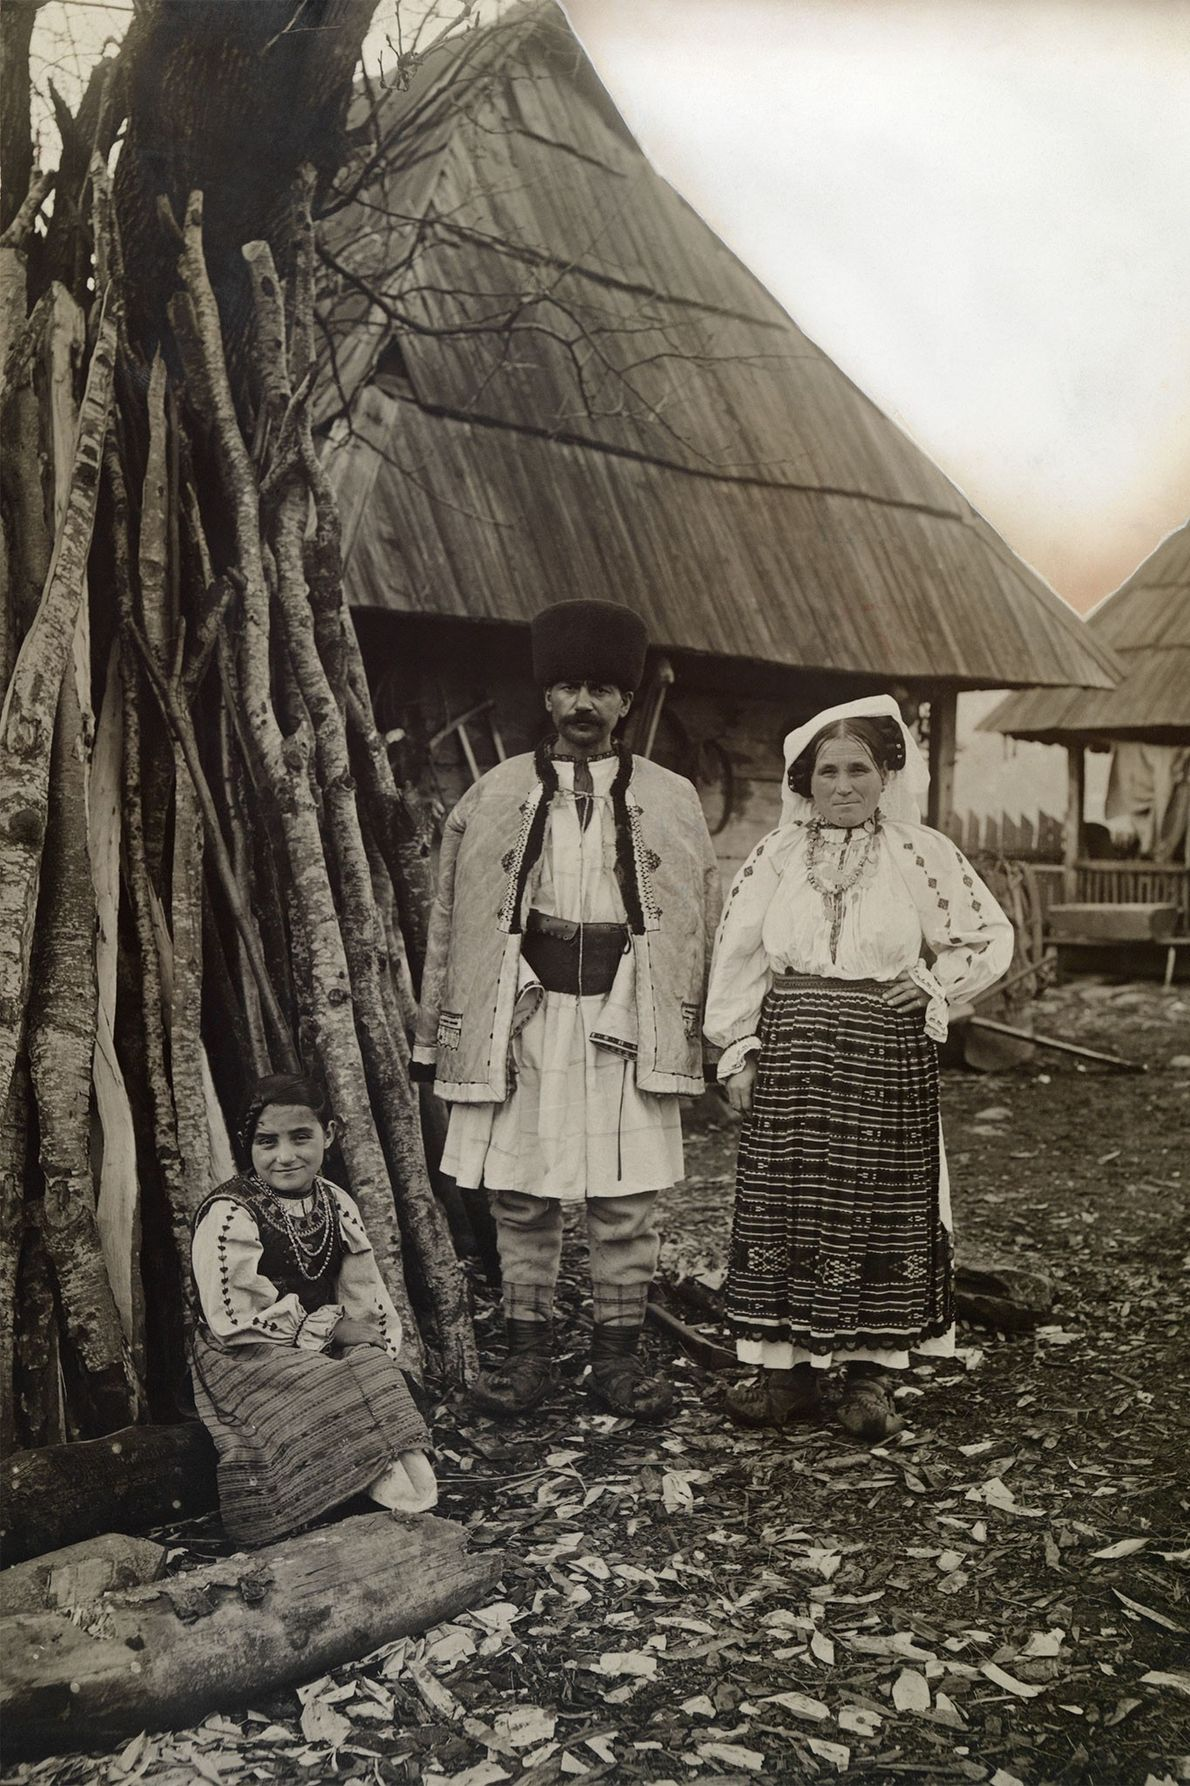 A Wallachian family stands outside their home in Transylvania in the early 1900s.